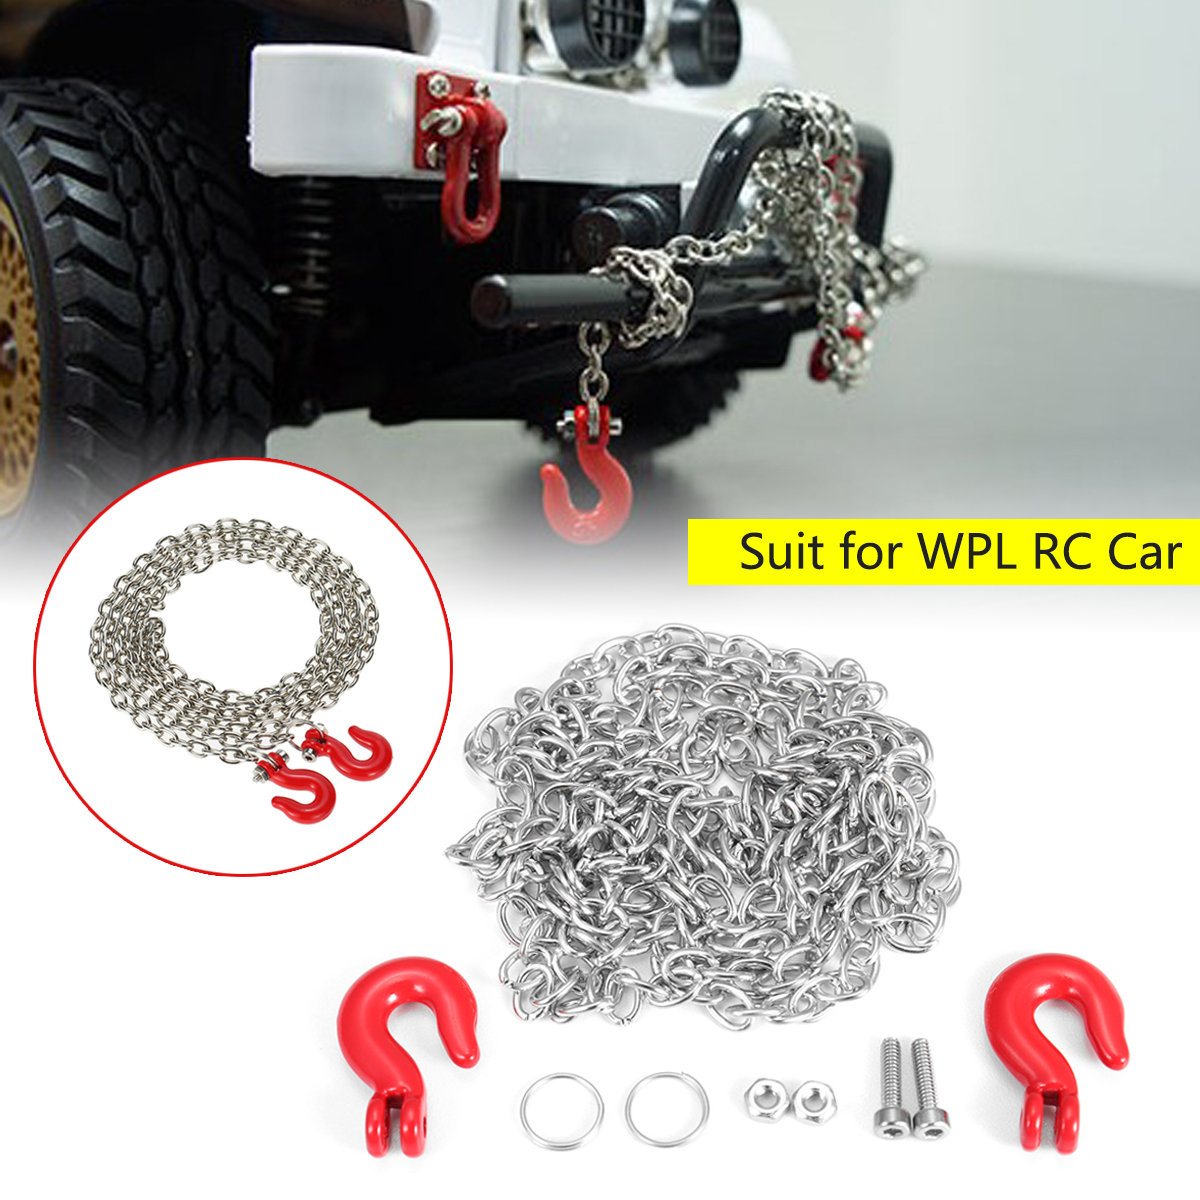 Metal Trailer Hook&Chain Spare Part For WPL B-1 B-16 B-24 C14 RC Military Truck Cool and Attractive Red & Silver Durable Replace